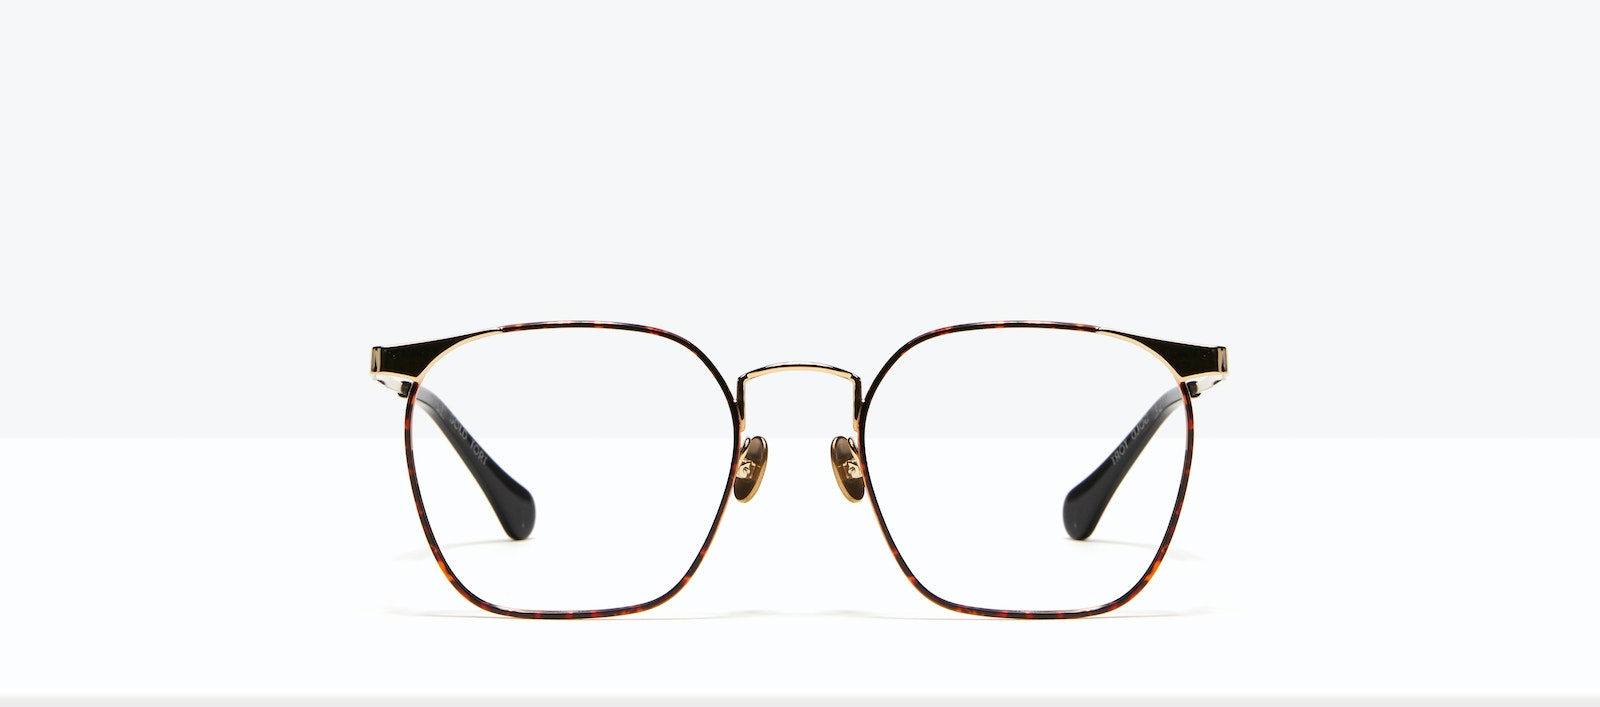 Affordable Fashion Glasses Square Eyeglasses Women Artsy Gold Tort Front